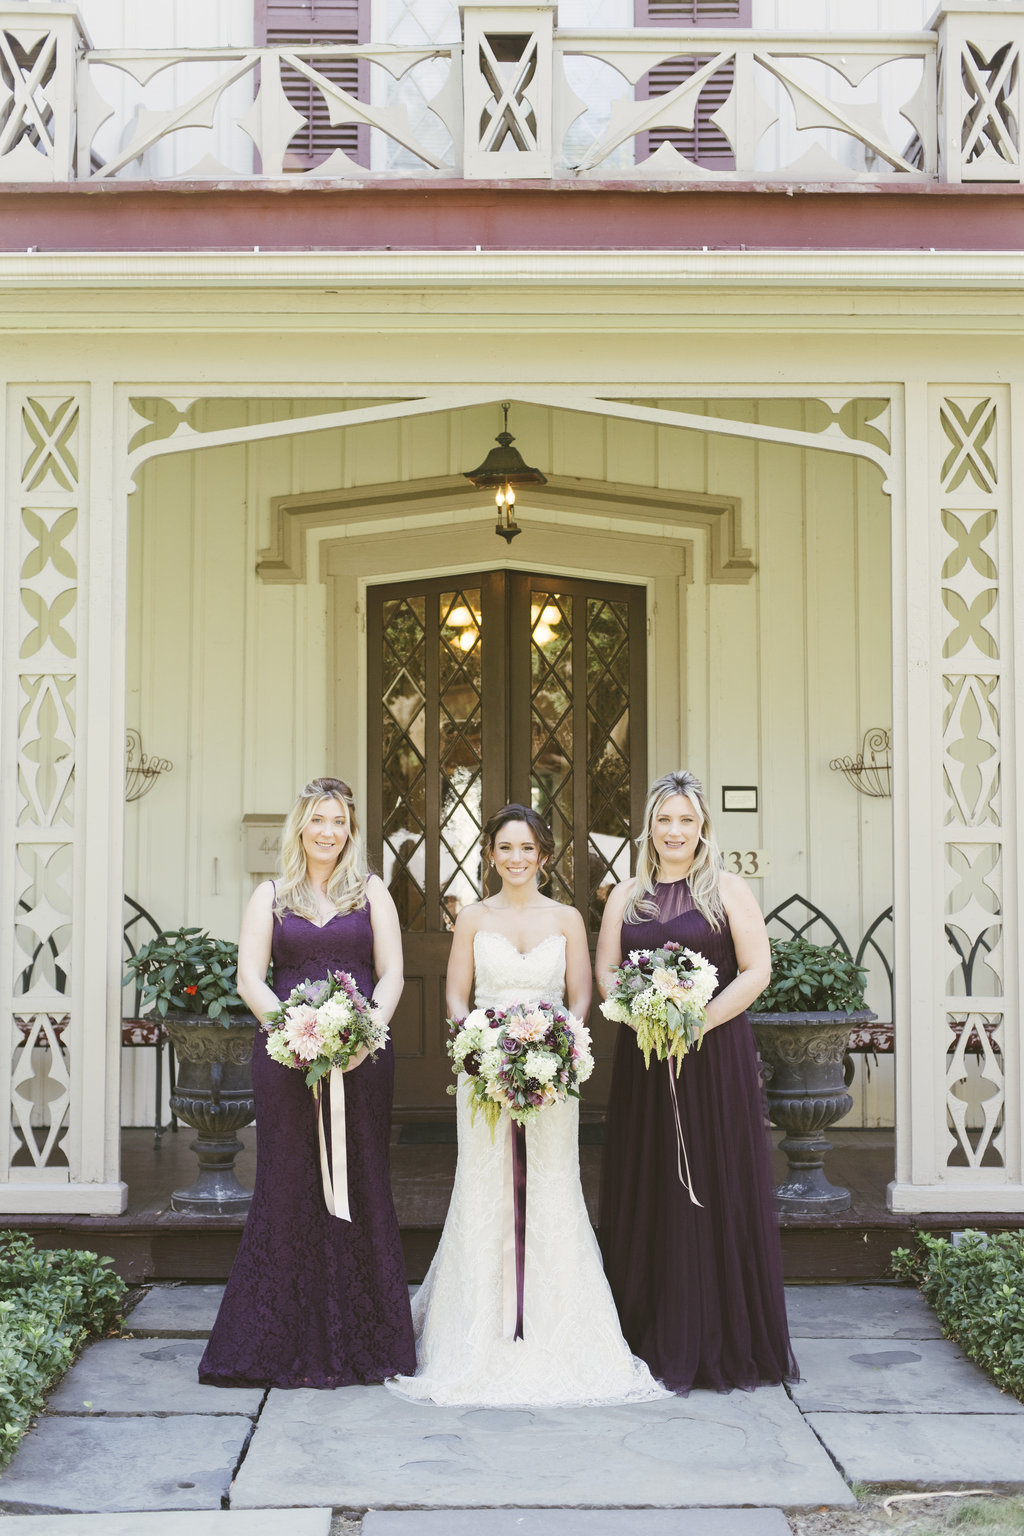 Monica-Relyea-Events-Alicia-King-Photography-Delamater-Inn-Beekman-Arms-Wedding-Rhinebeck-New-York-Hudson-Valley111